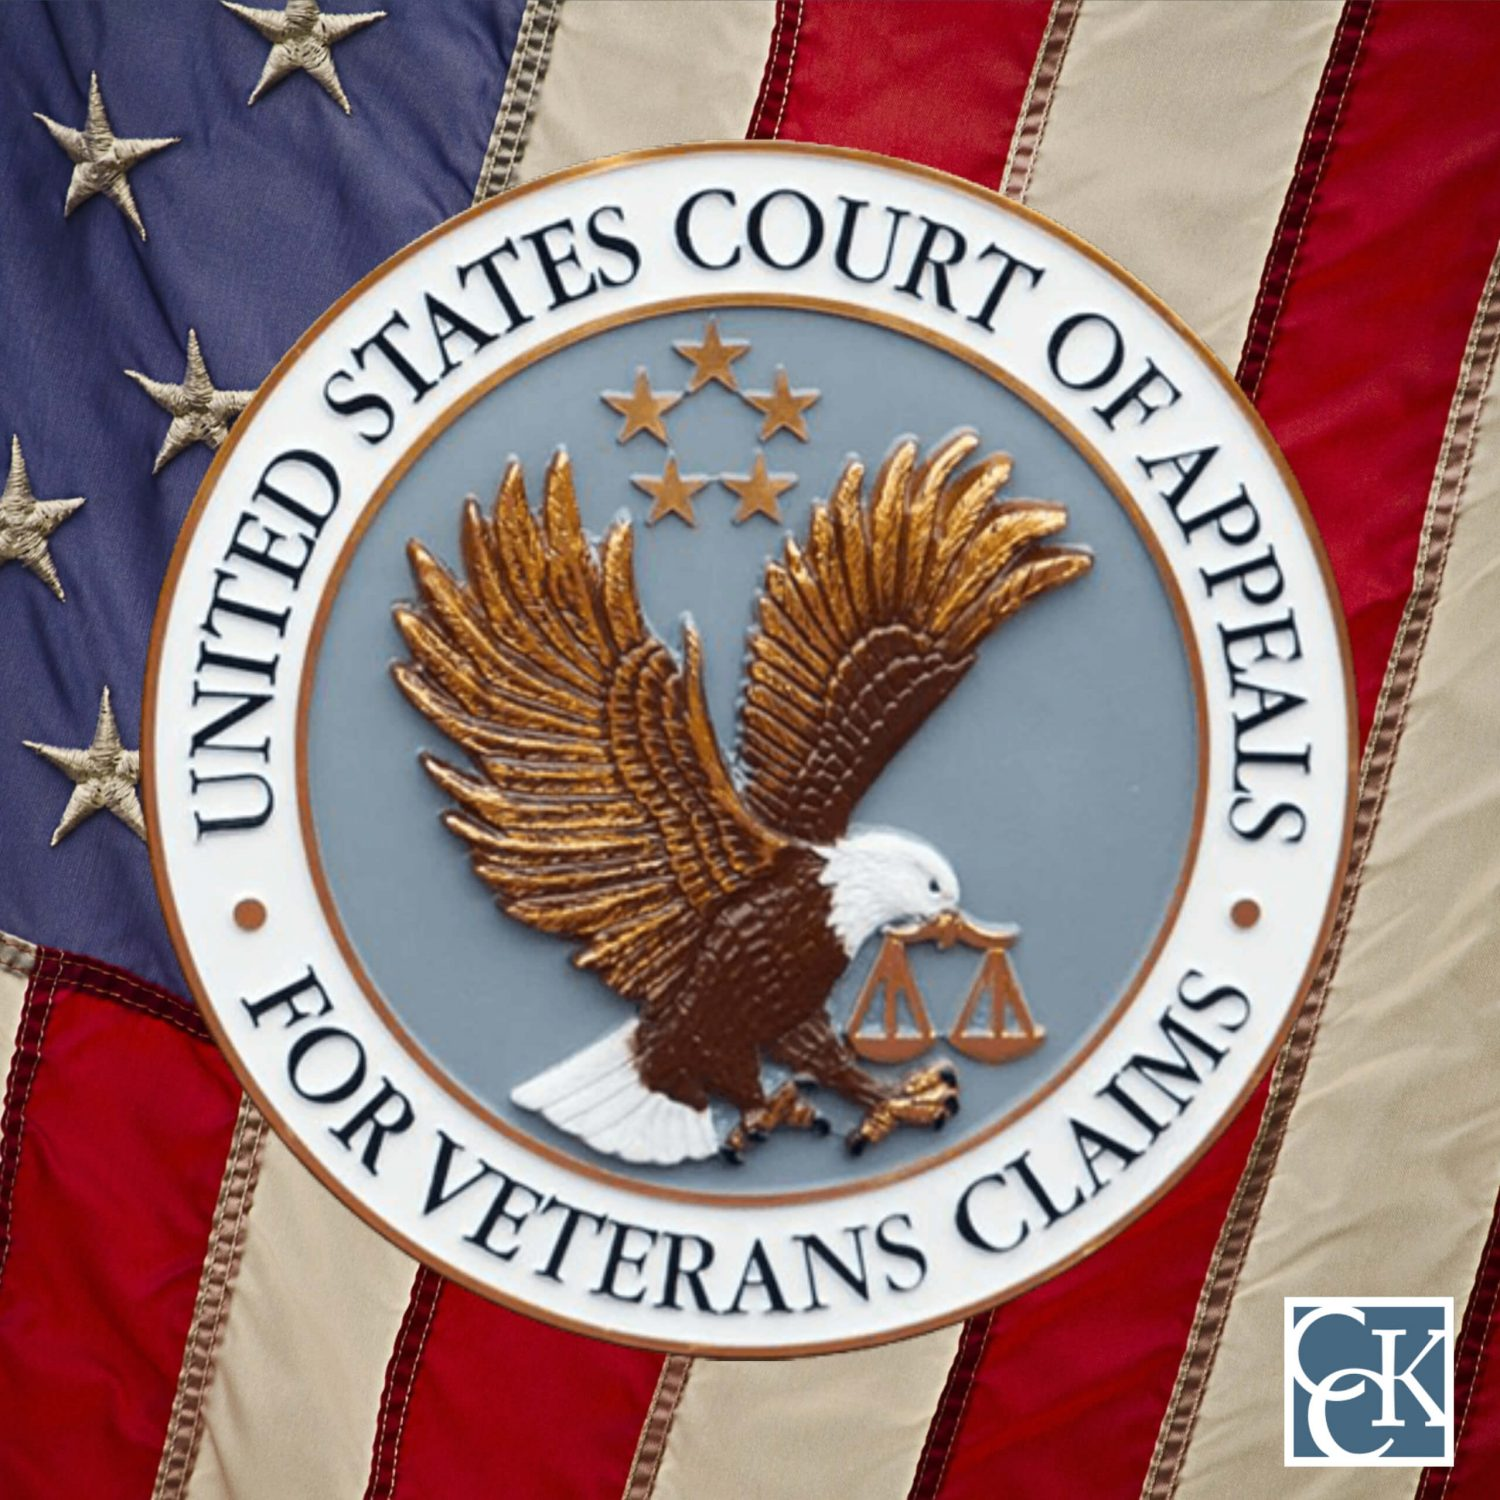 Court of Appeals for Veterans Claims Seal against American Flag Background with CCK logo